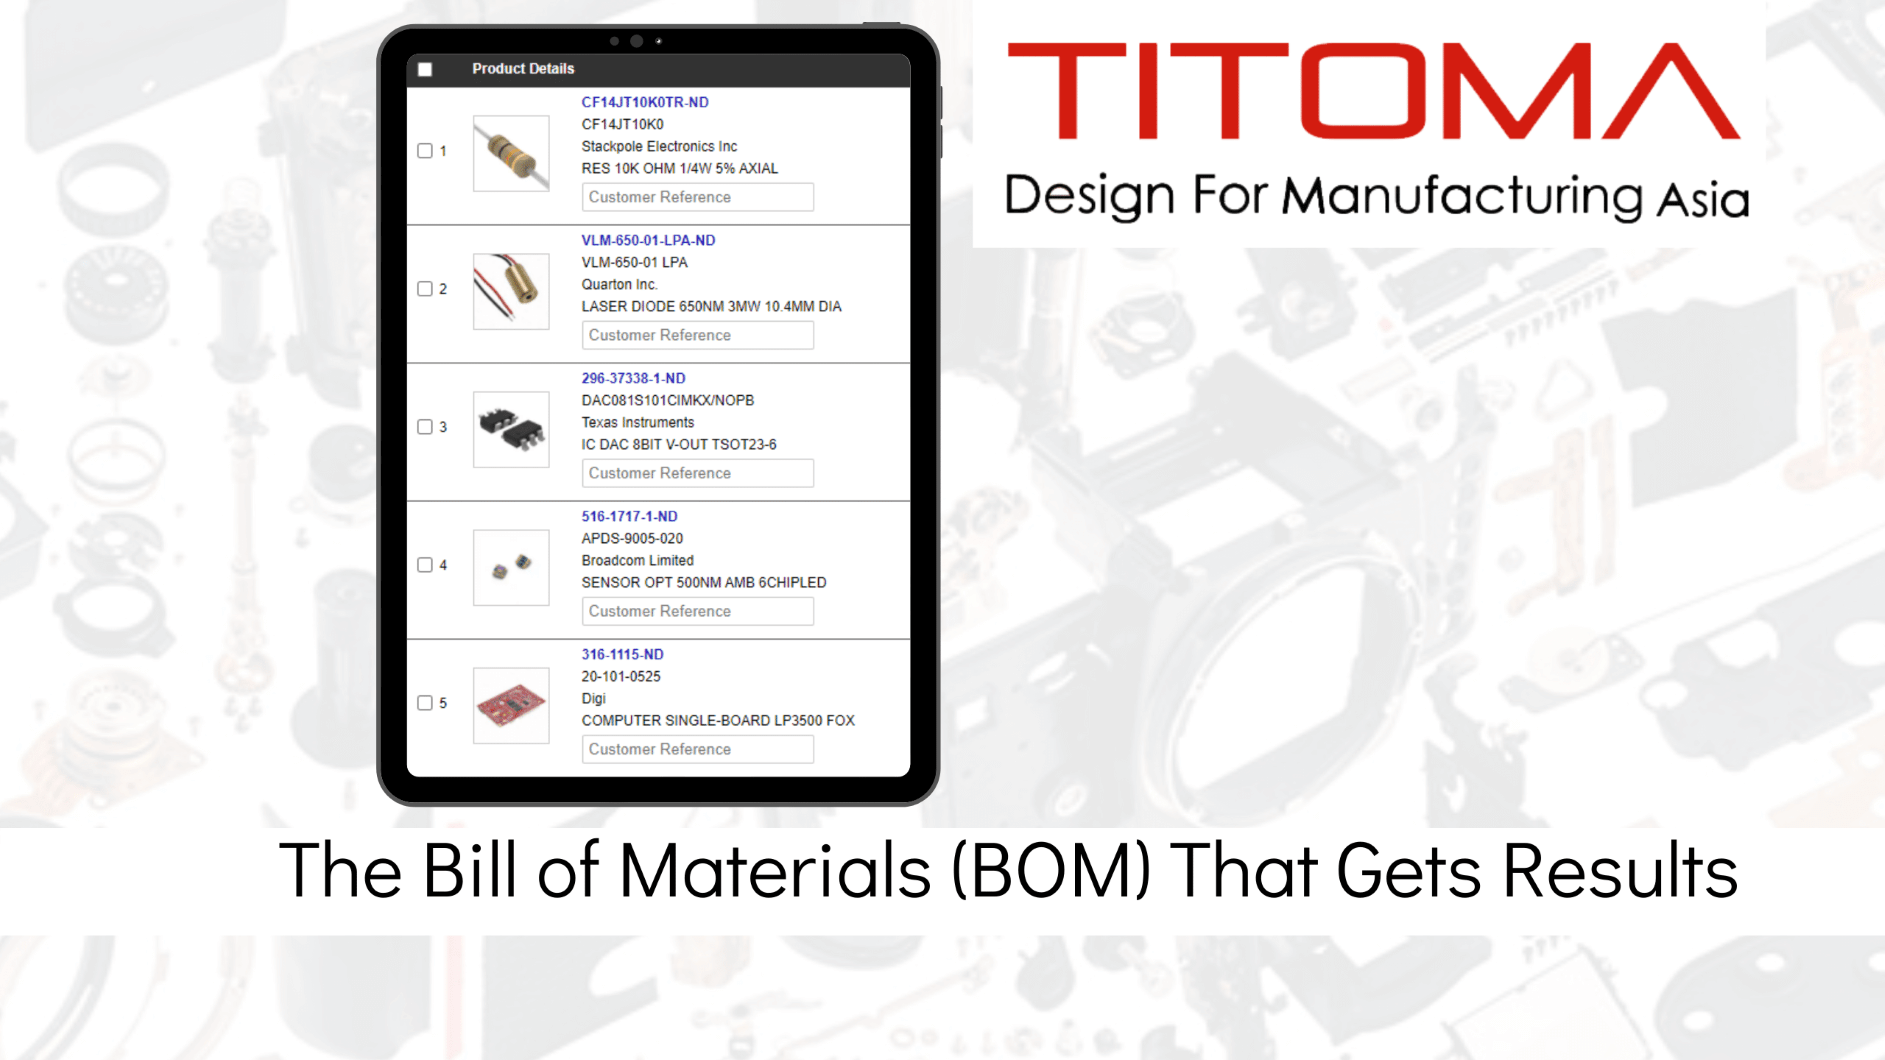 BOM bill of materials that gets results